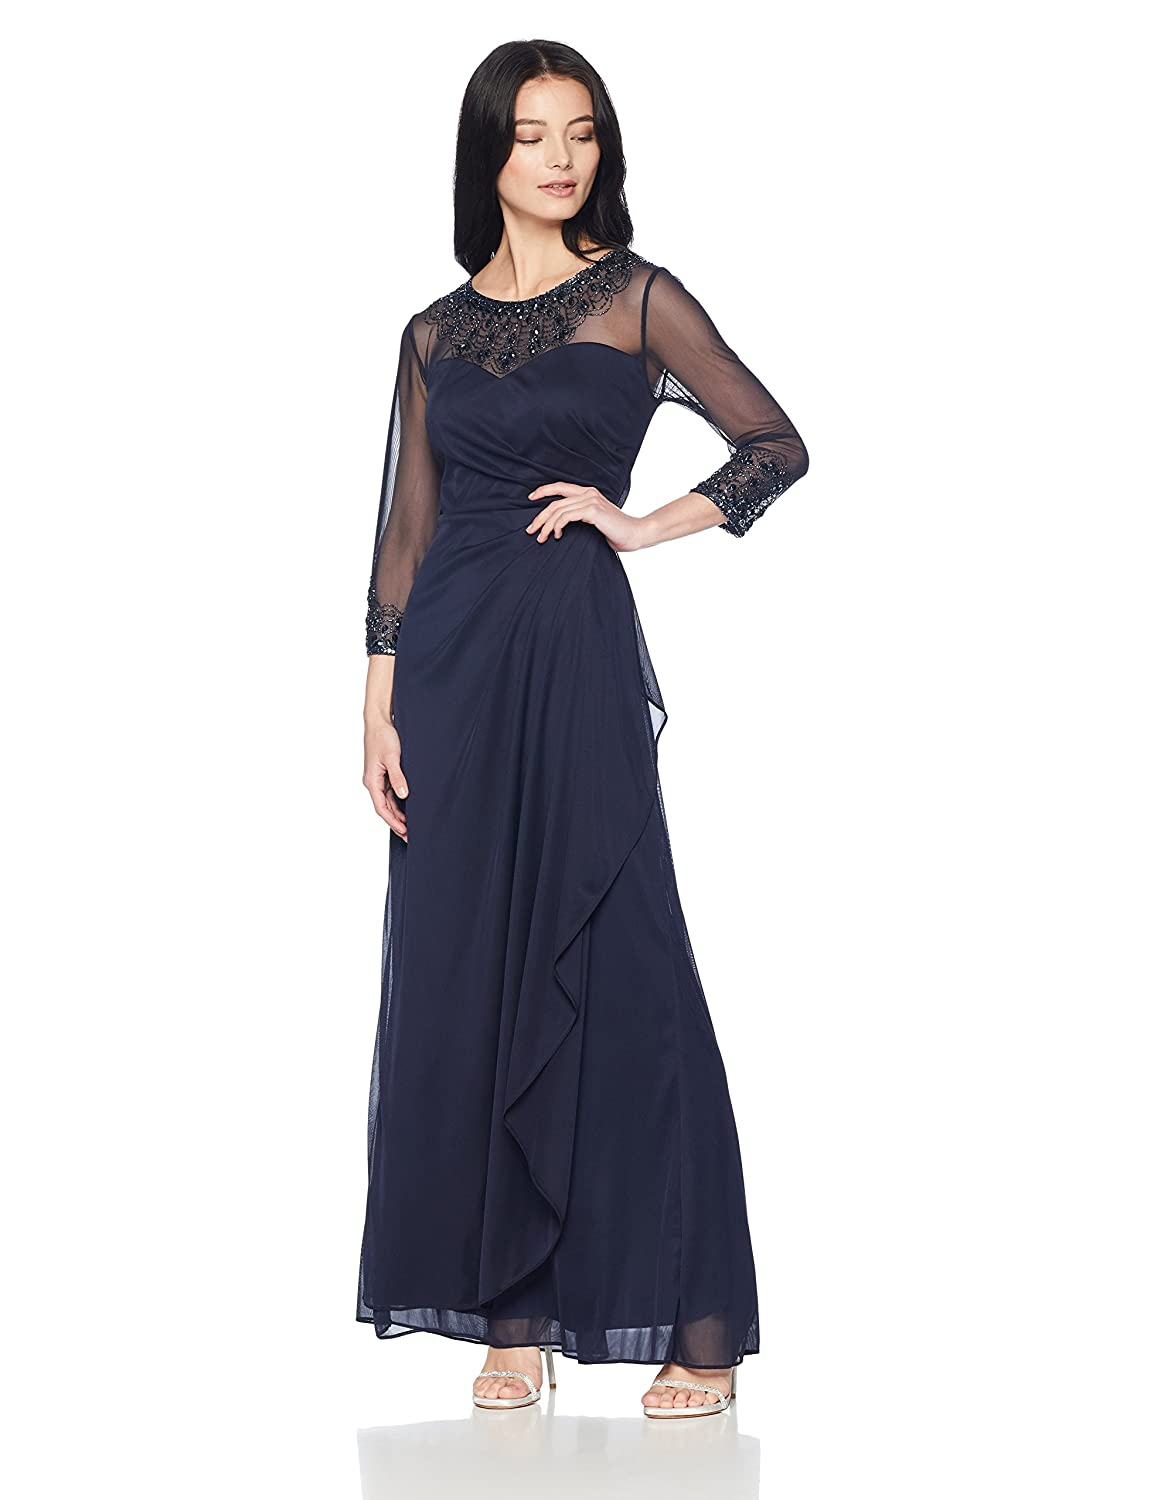 79bff5a92bc78 Top 10 wholesale Alex Petite Evening Dresses - Chinabrands.com